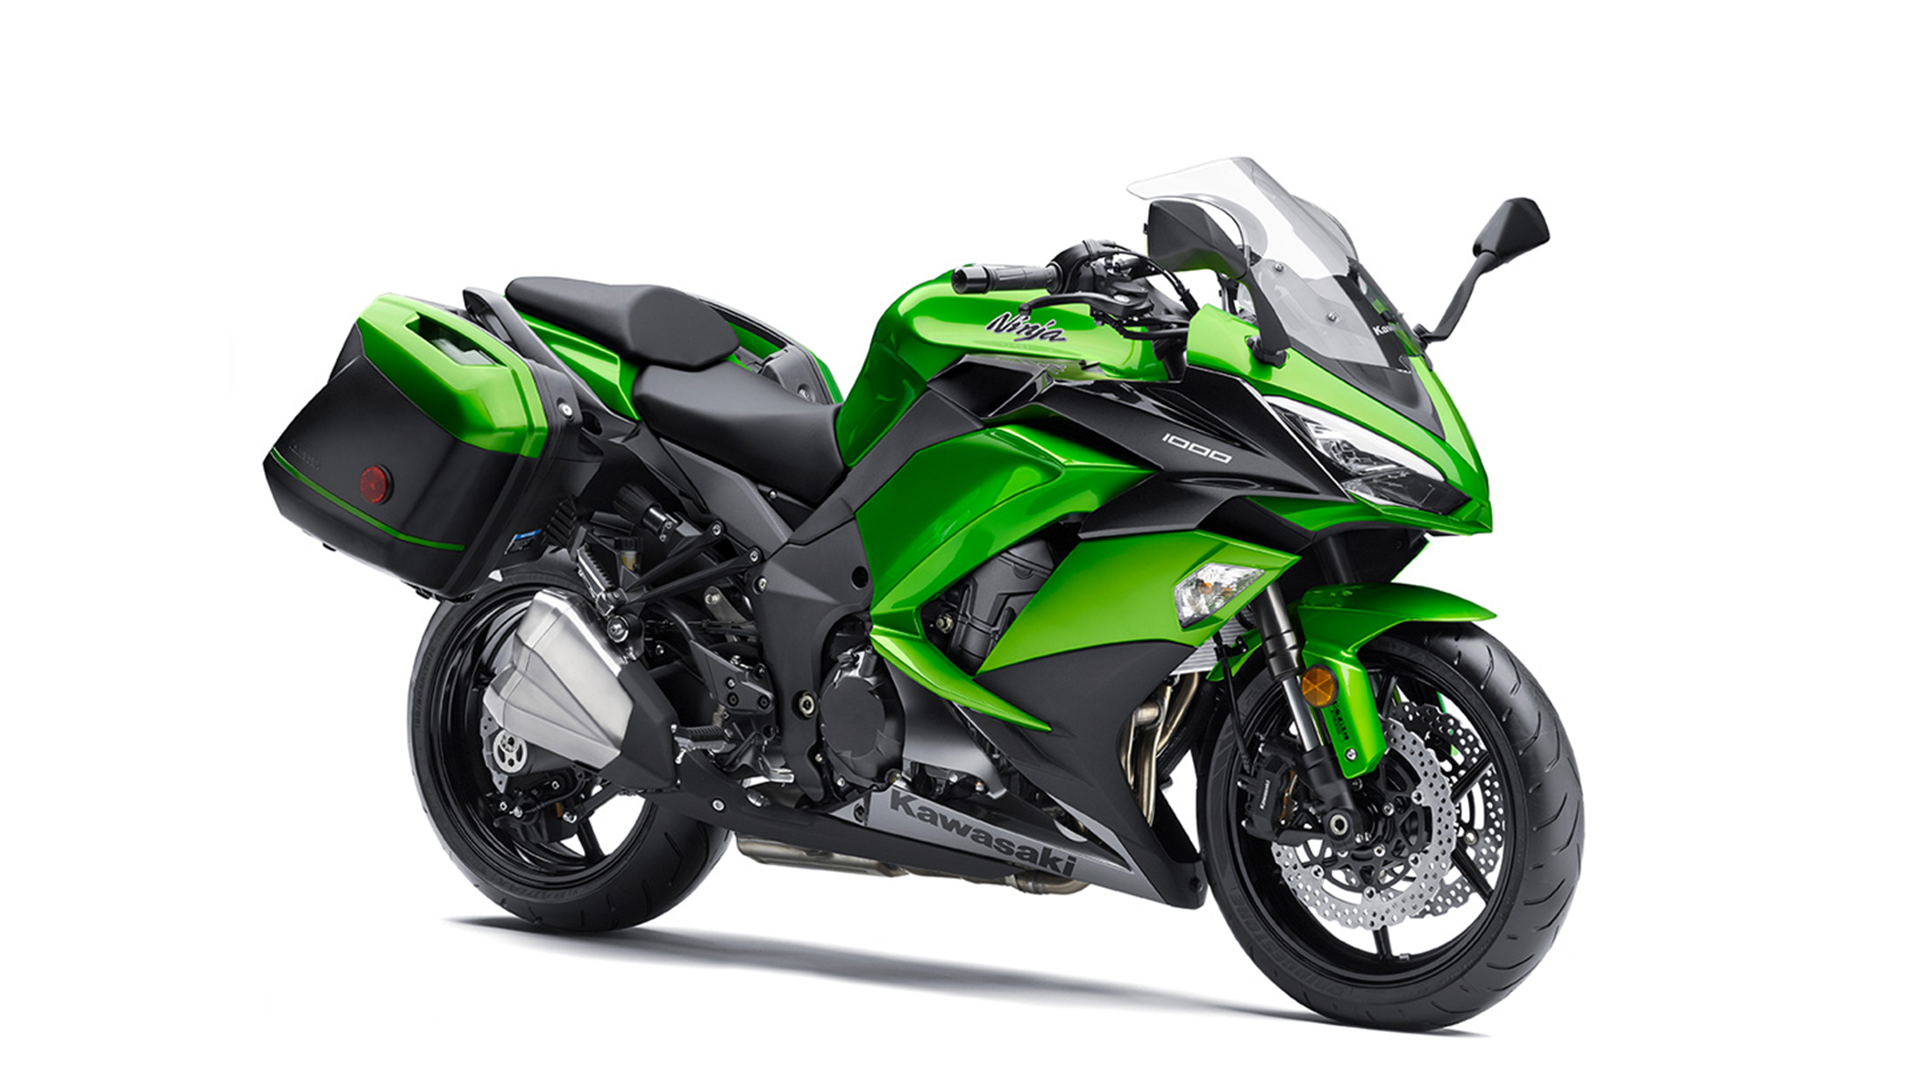 Kawasaki Ninja H Price In India